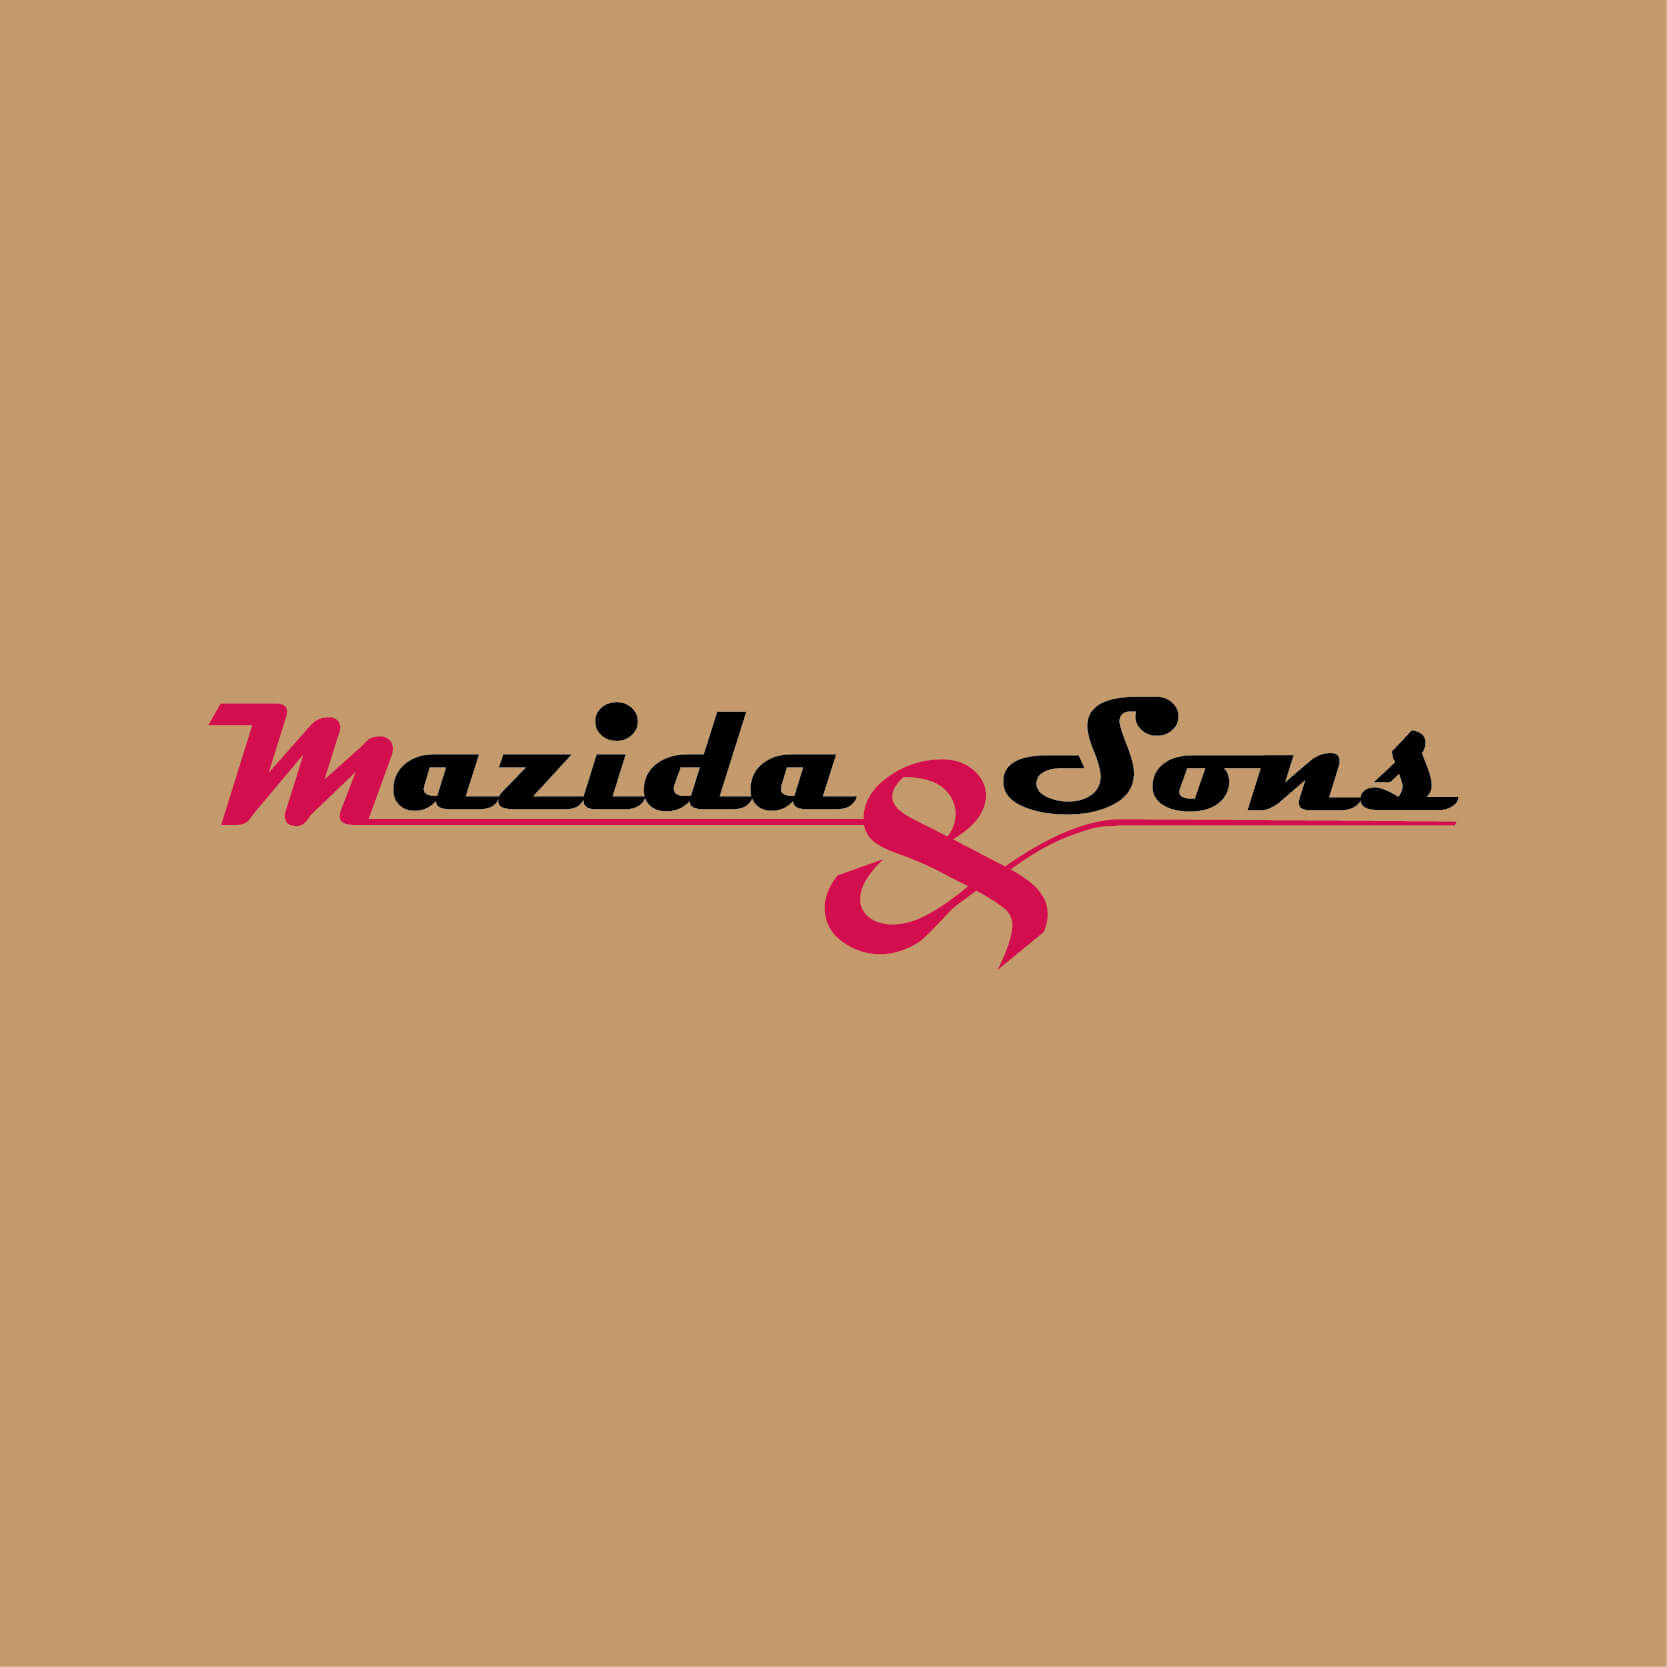 DTC-Clients-Served-Logo-Mazida & Sons